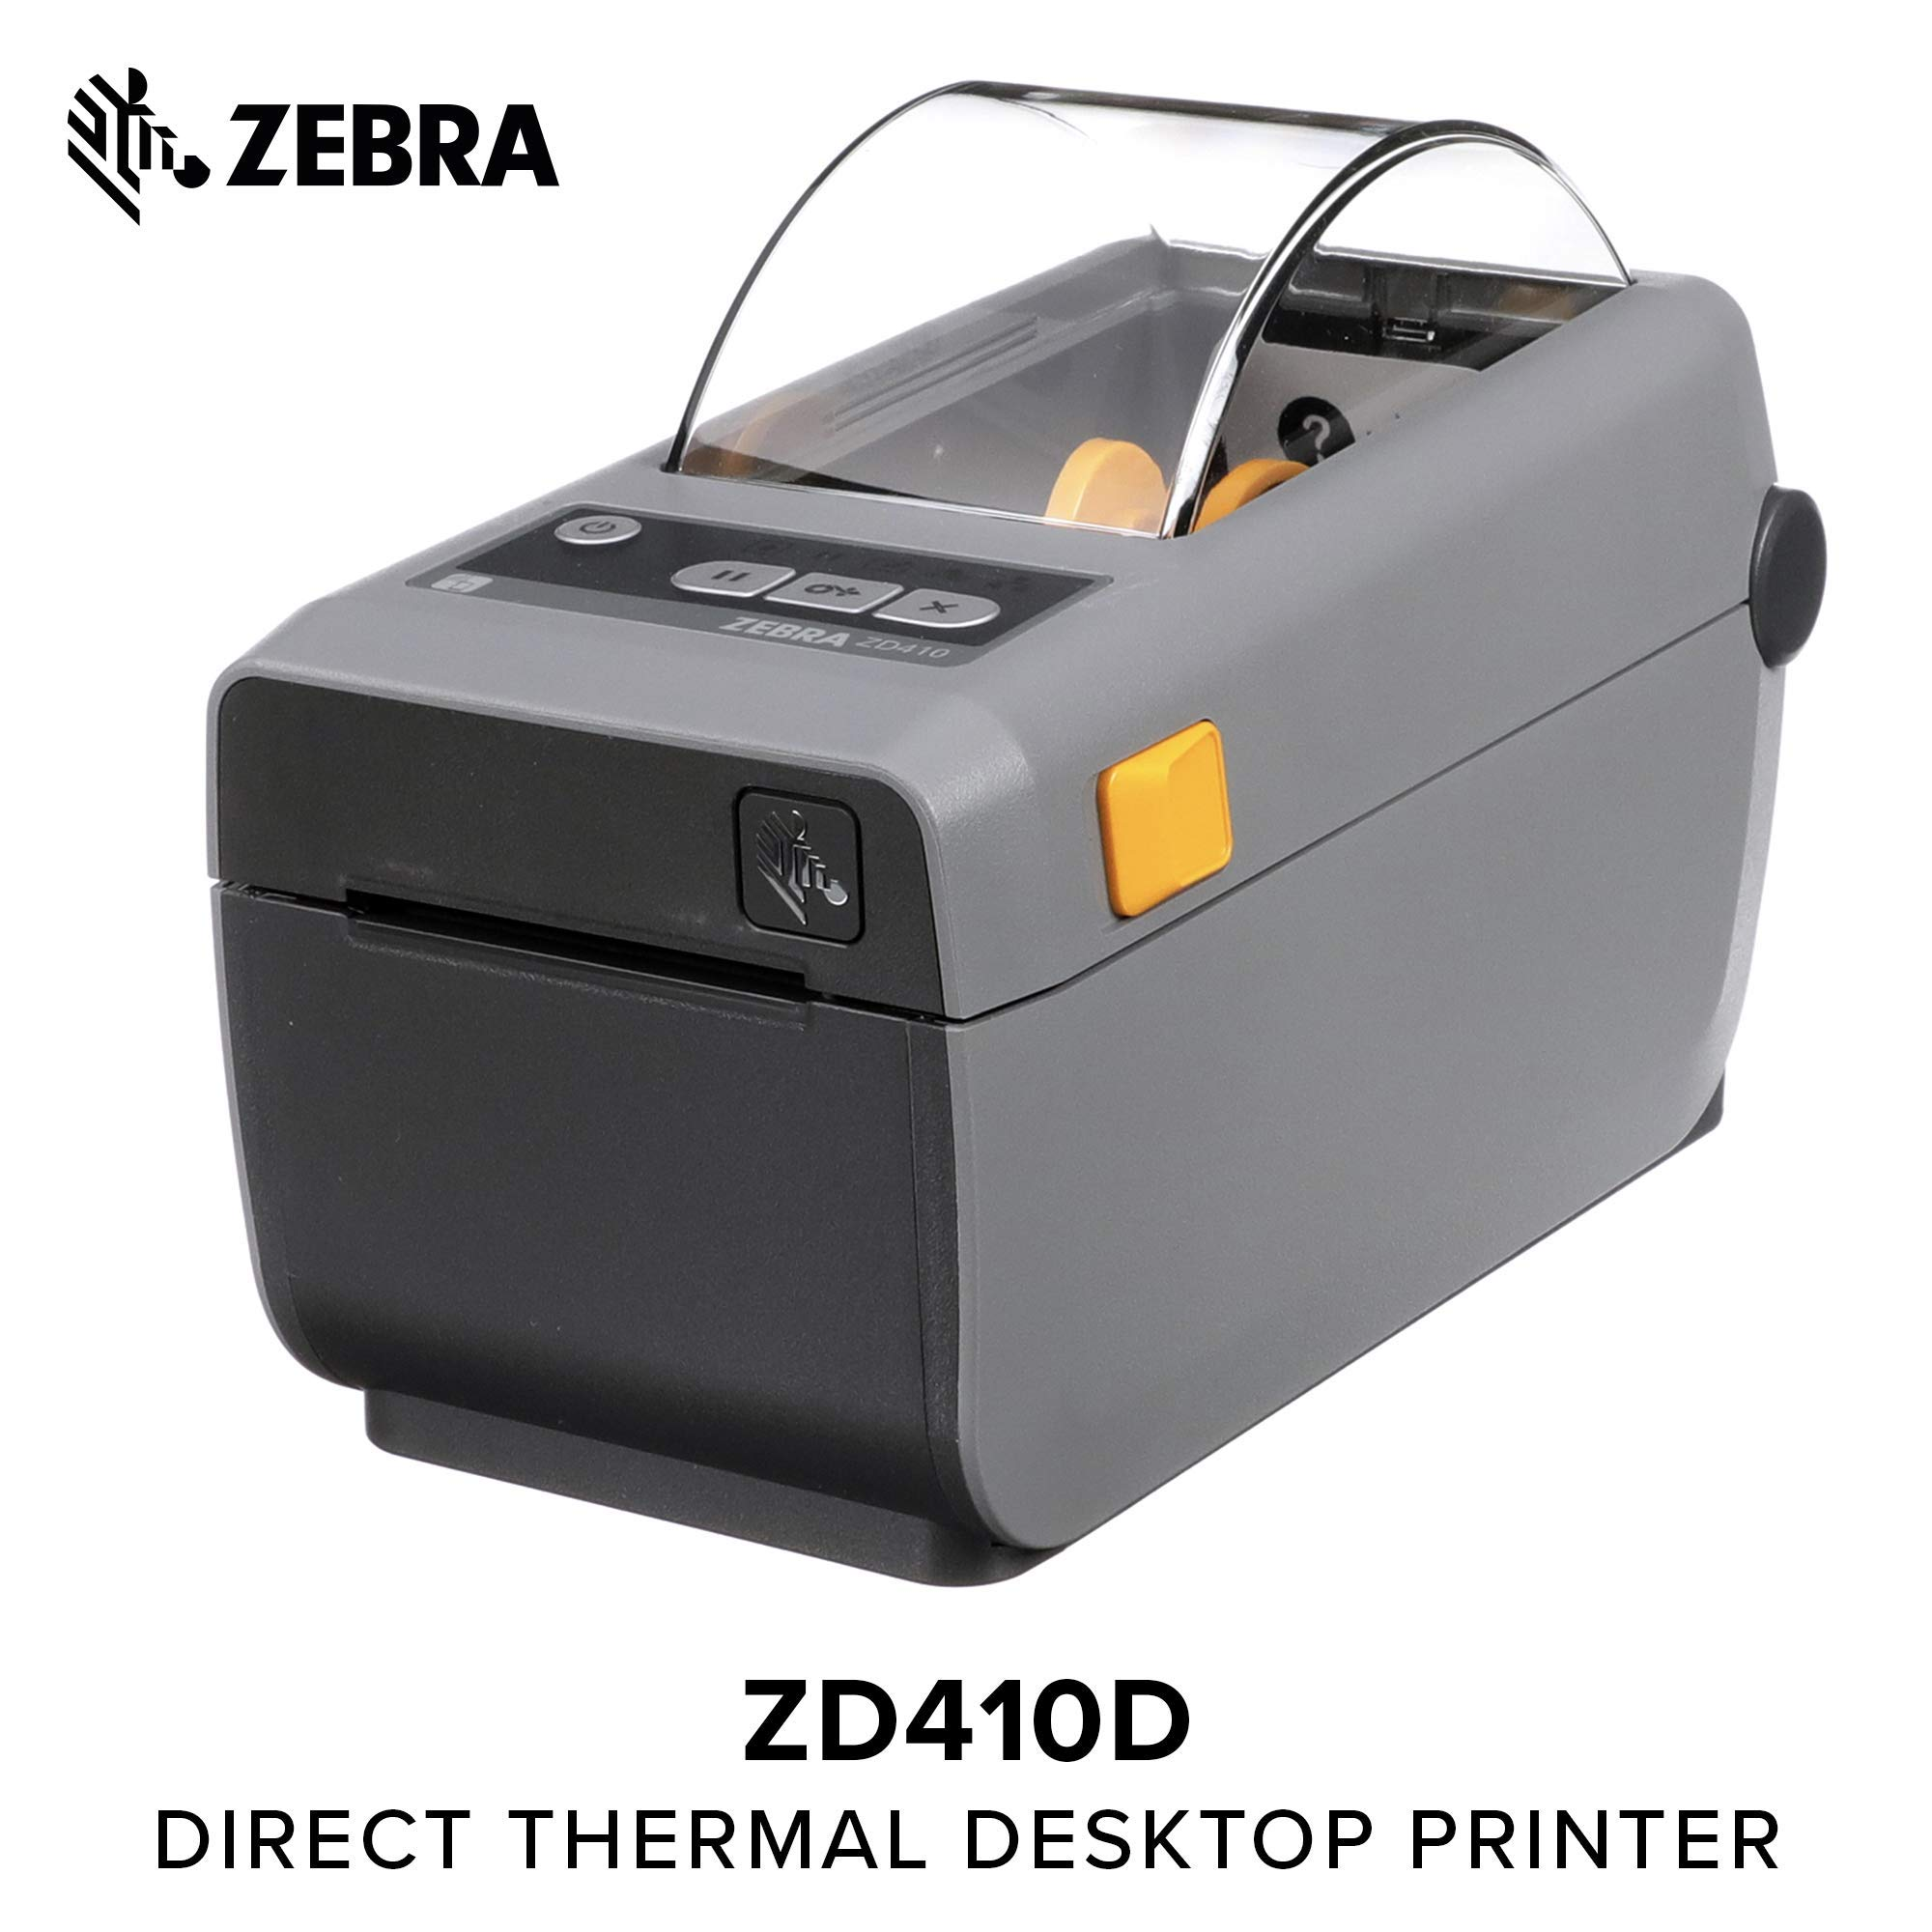 Zebra - ZD410 Wireless Direct Thermal Desktop Printer for Labels, Receipts, Barcodes, Tags, and Wrist Bands - Print Width of 2 in - USB and Bluetooth Low Energy Connectivity (Renewed)